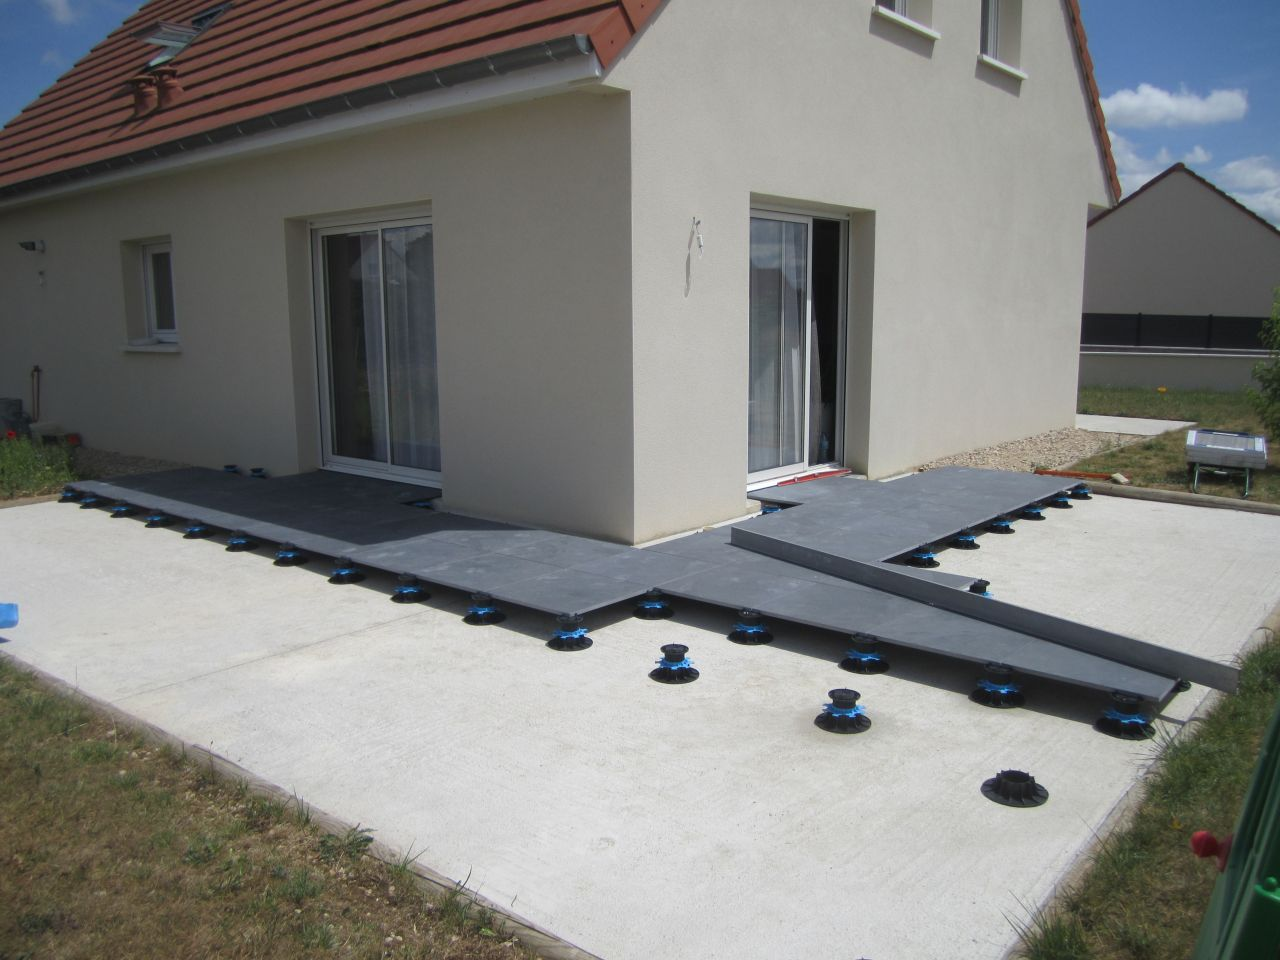 Comment poser des dalles adhesives sur du carrelage maison design - Dalle pvc sur carrelage ...